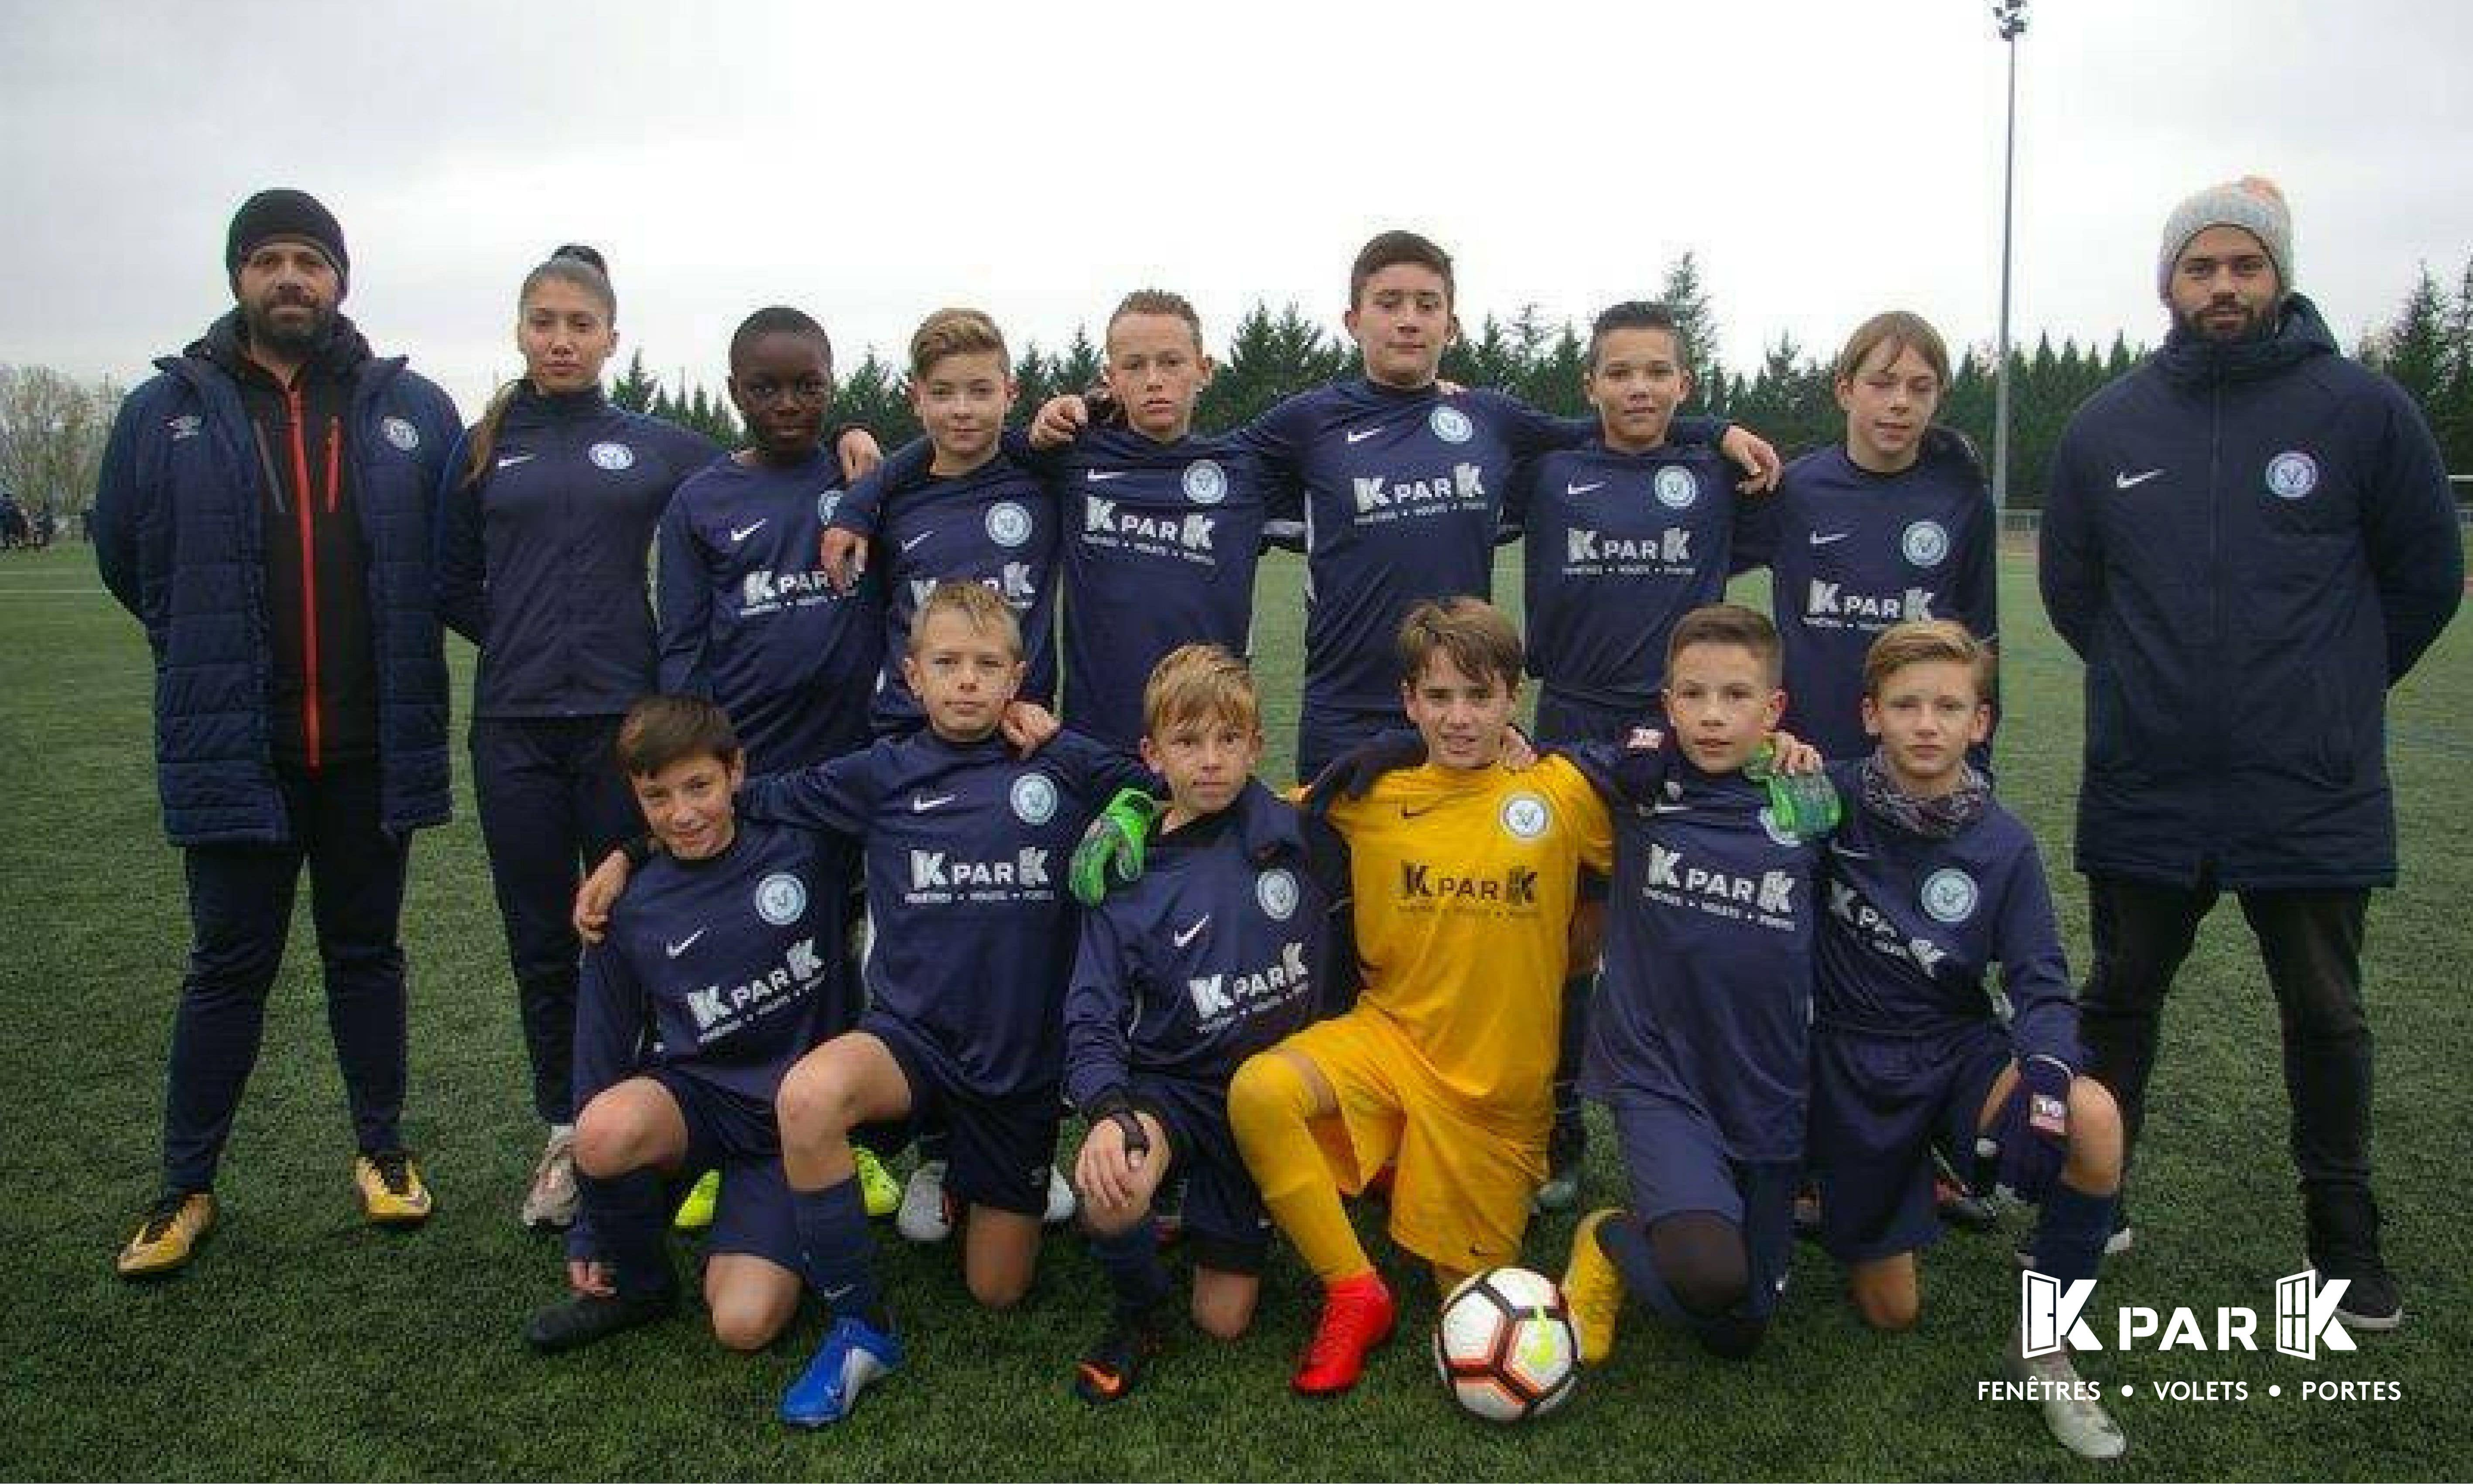 officiel photo us millery vourles kpark u11